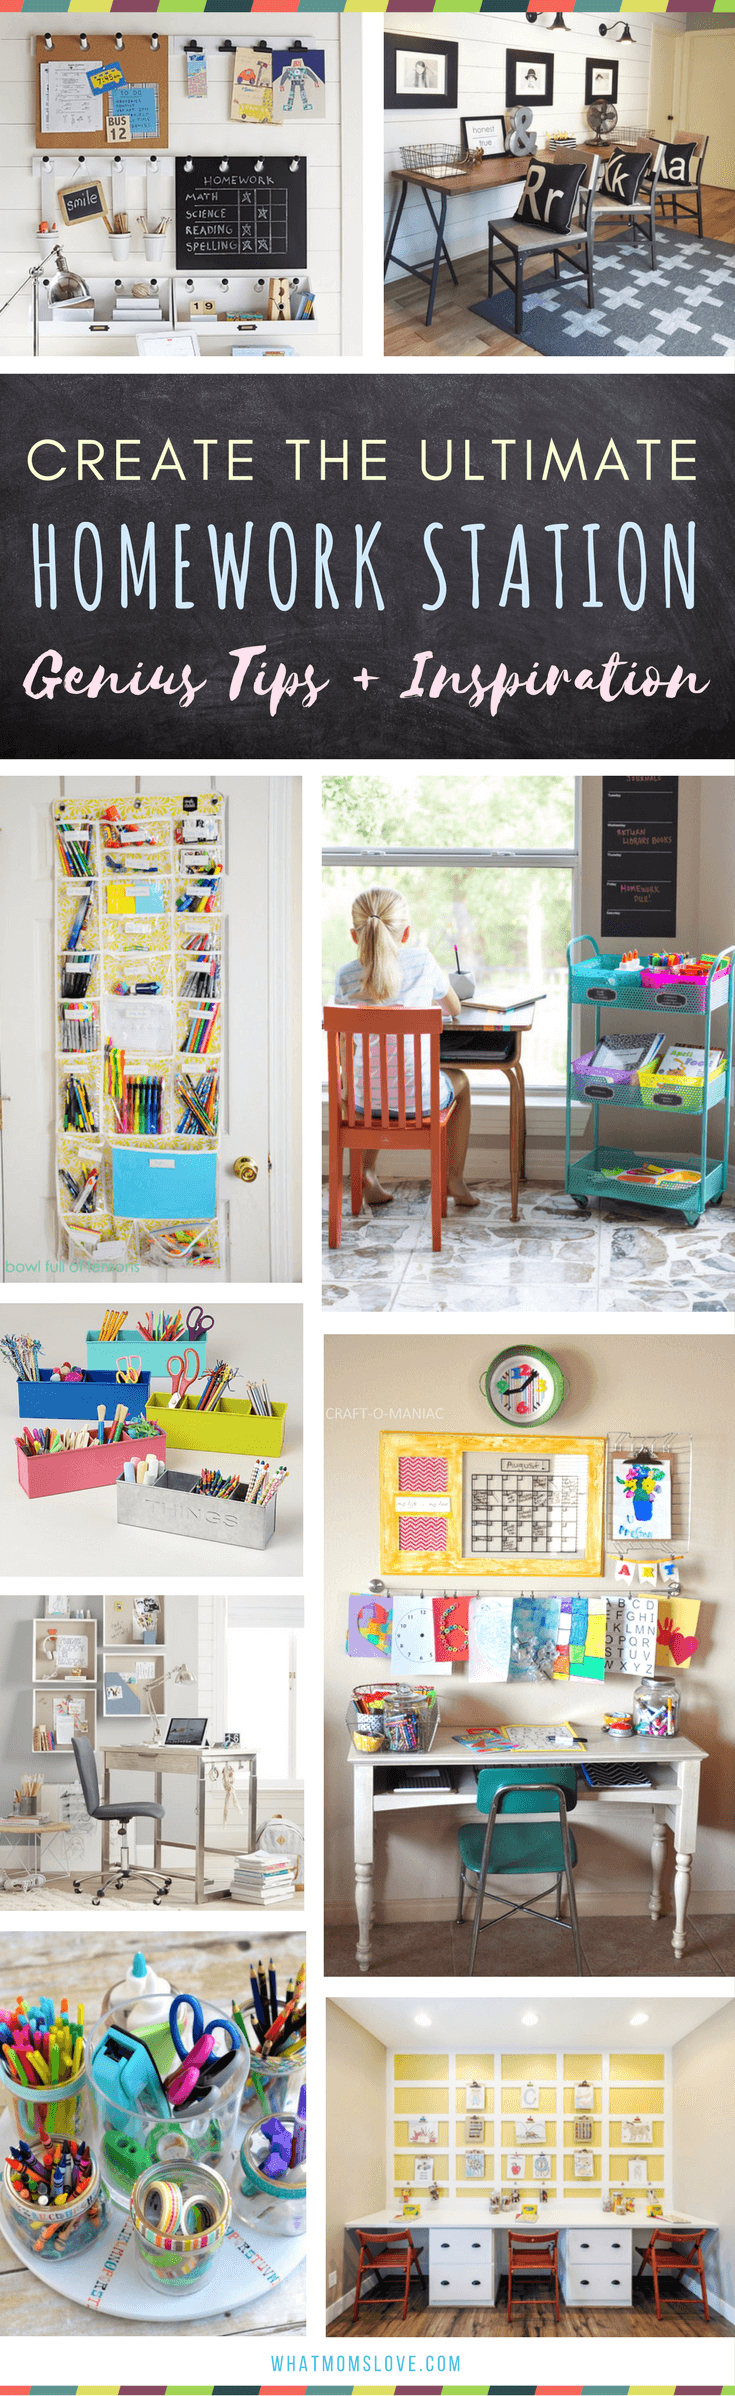 Homework Station For Kids The Best Organization Ideas How To Create A Study E